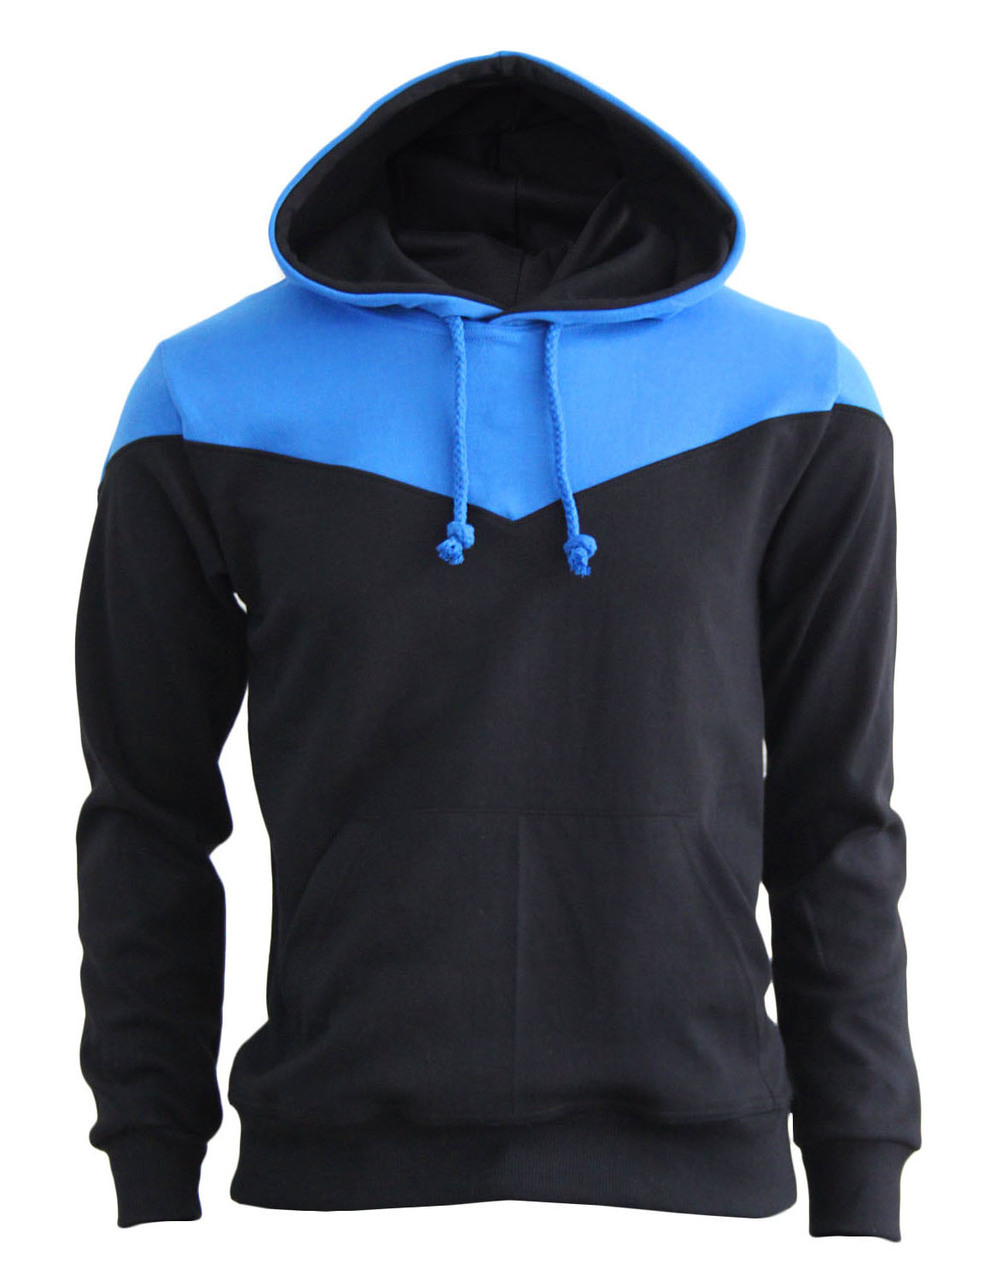 Under Armour Zip Up Jacket